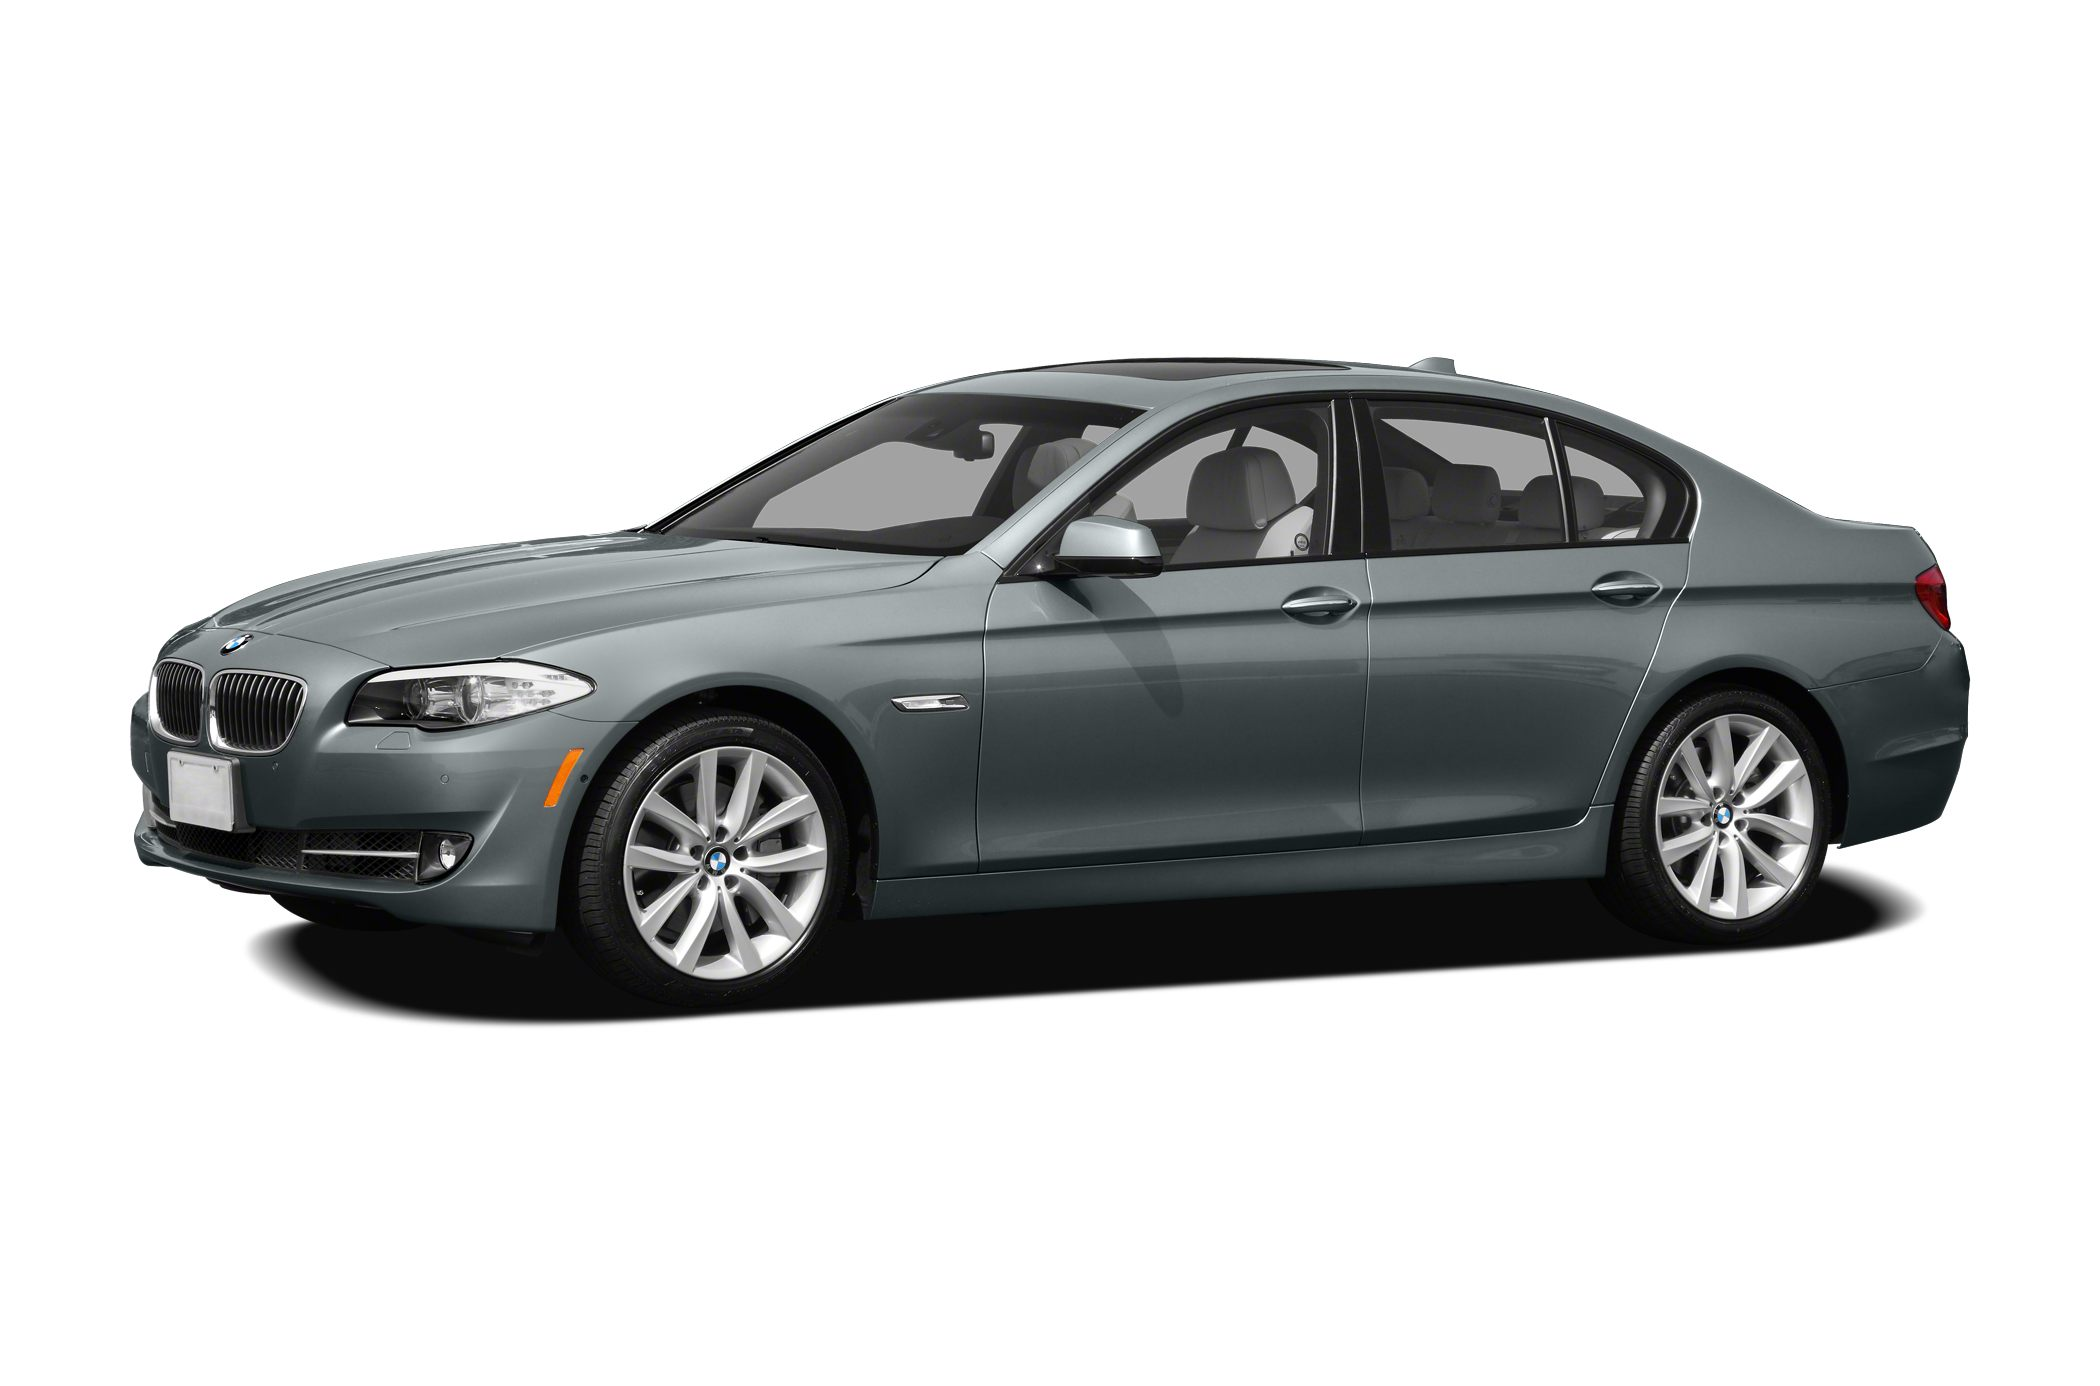 2011 BMW 535 I XDrive Sedan for sale in Mechanicsburg for $35,760 with 40,176 miles